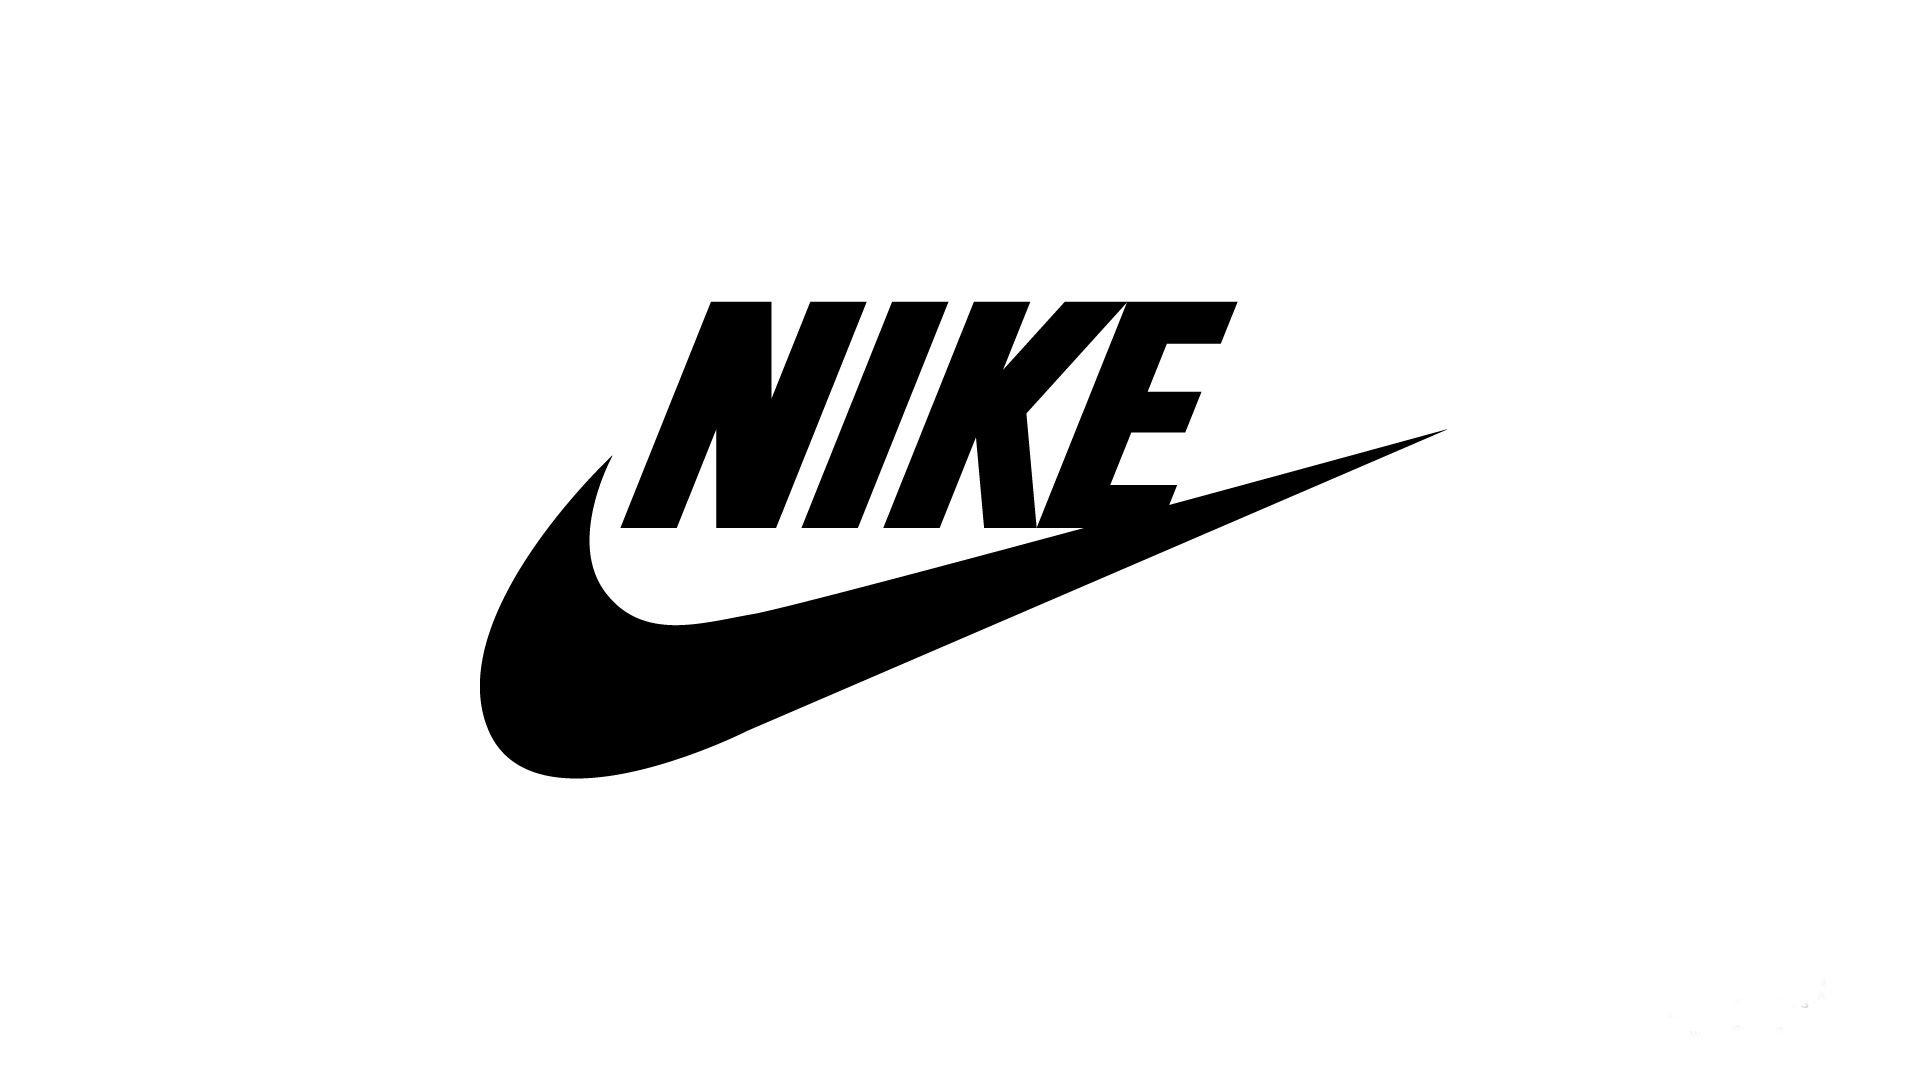 Propuesta alternativa Suelto rotación  Free Nike Font That Does What Needs To Be Done | HipFonts